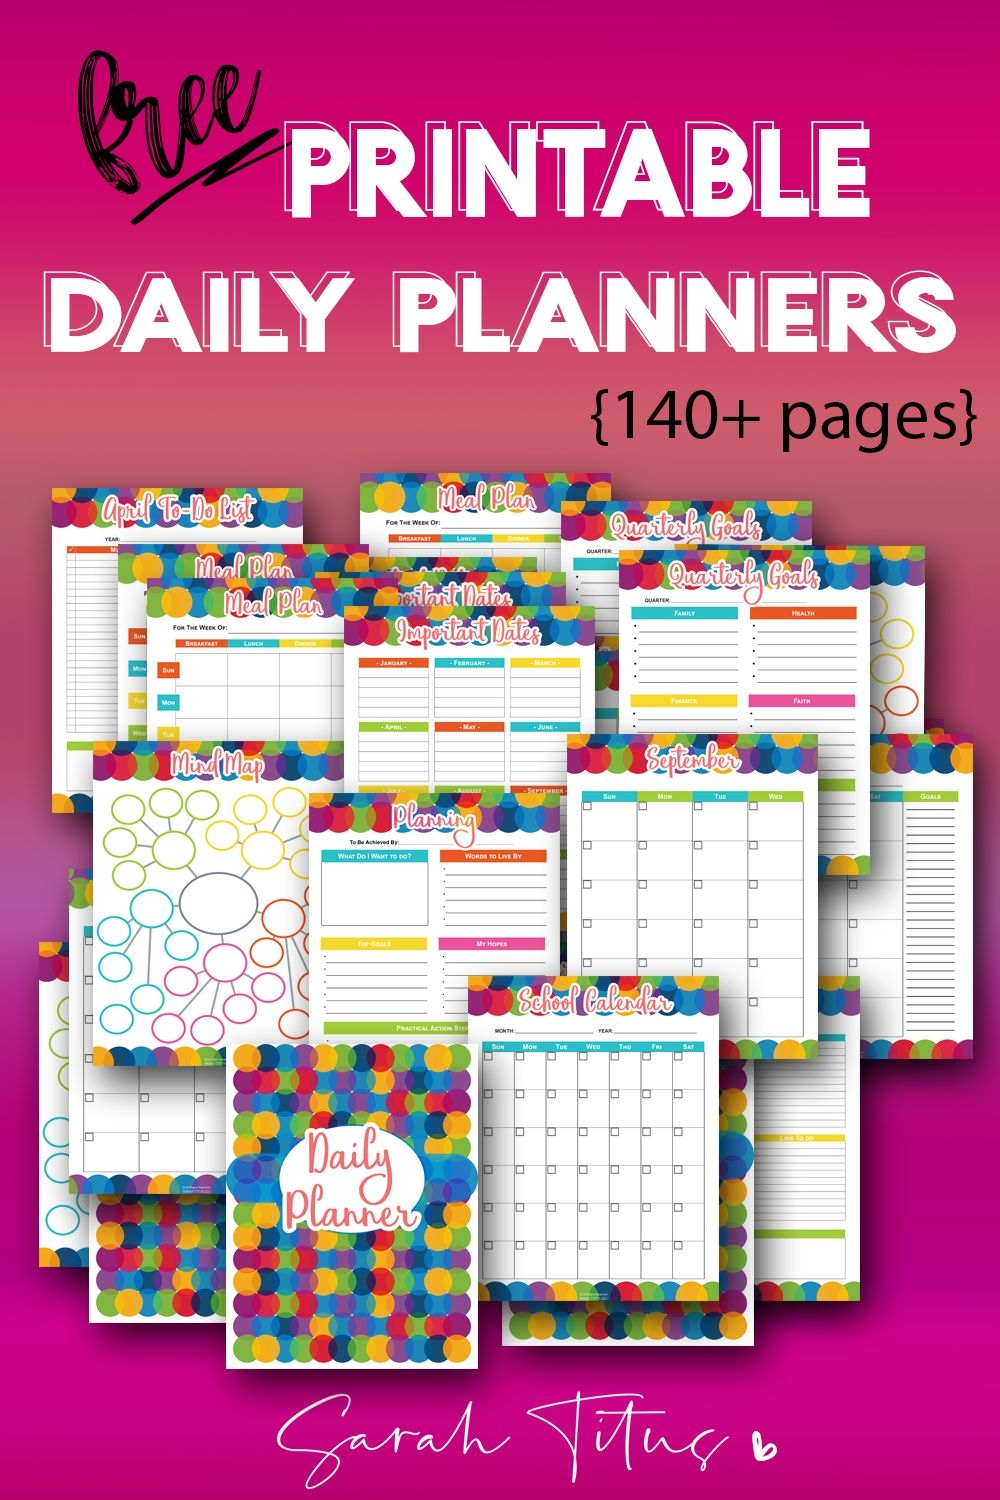 150 free printable daily planner templates that will save